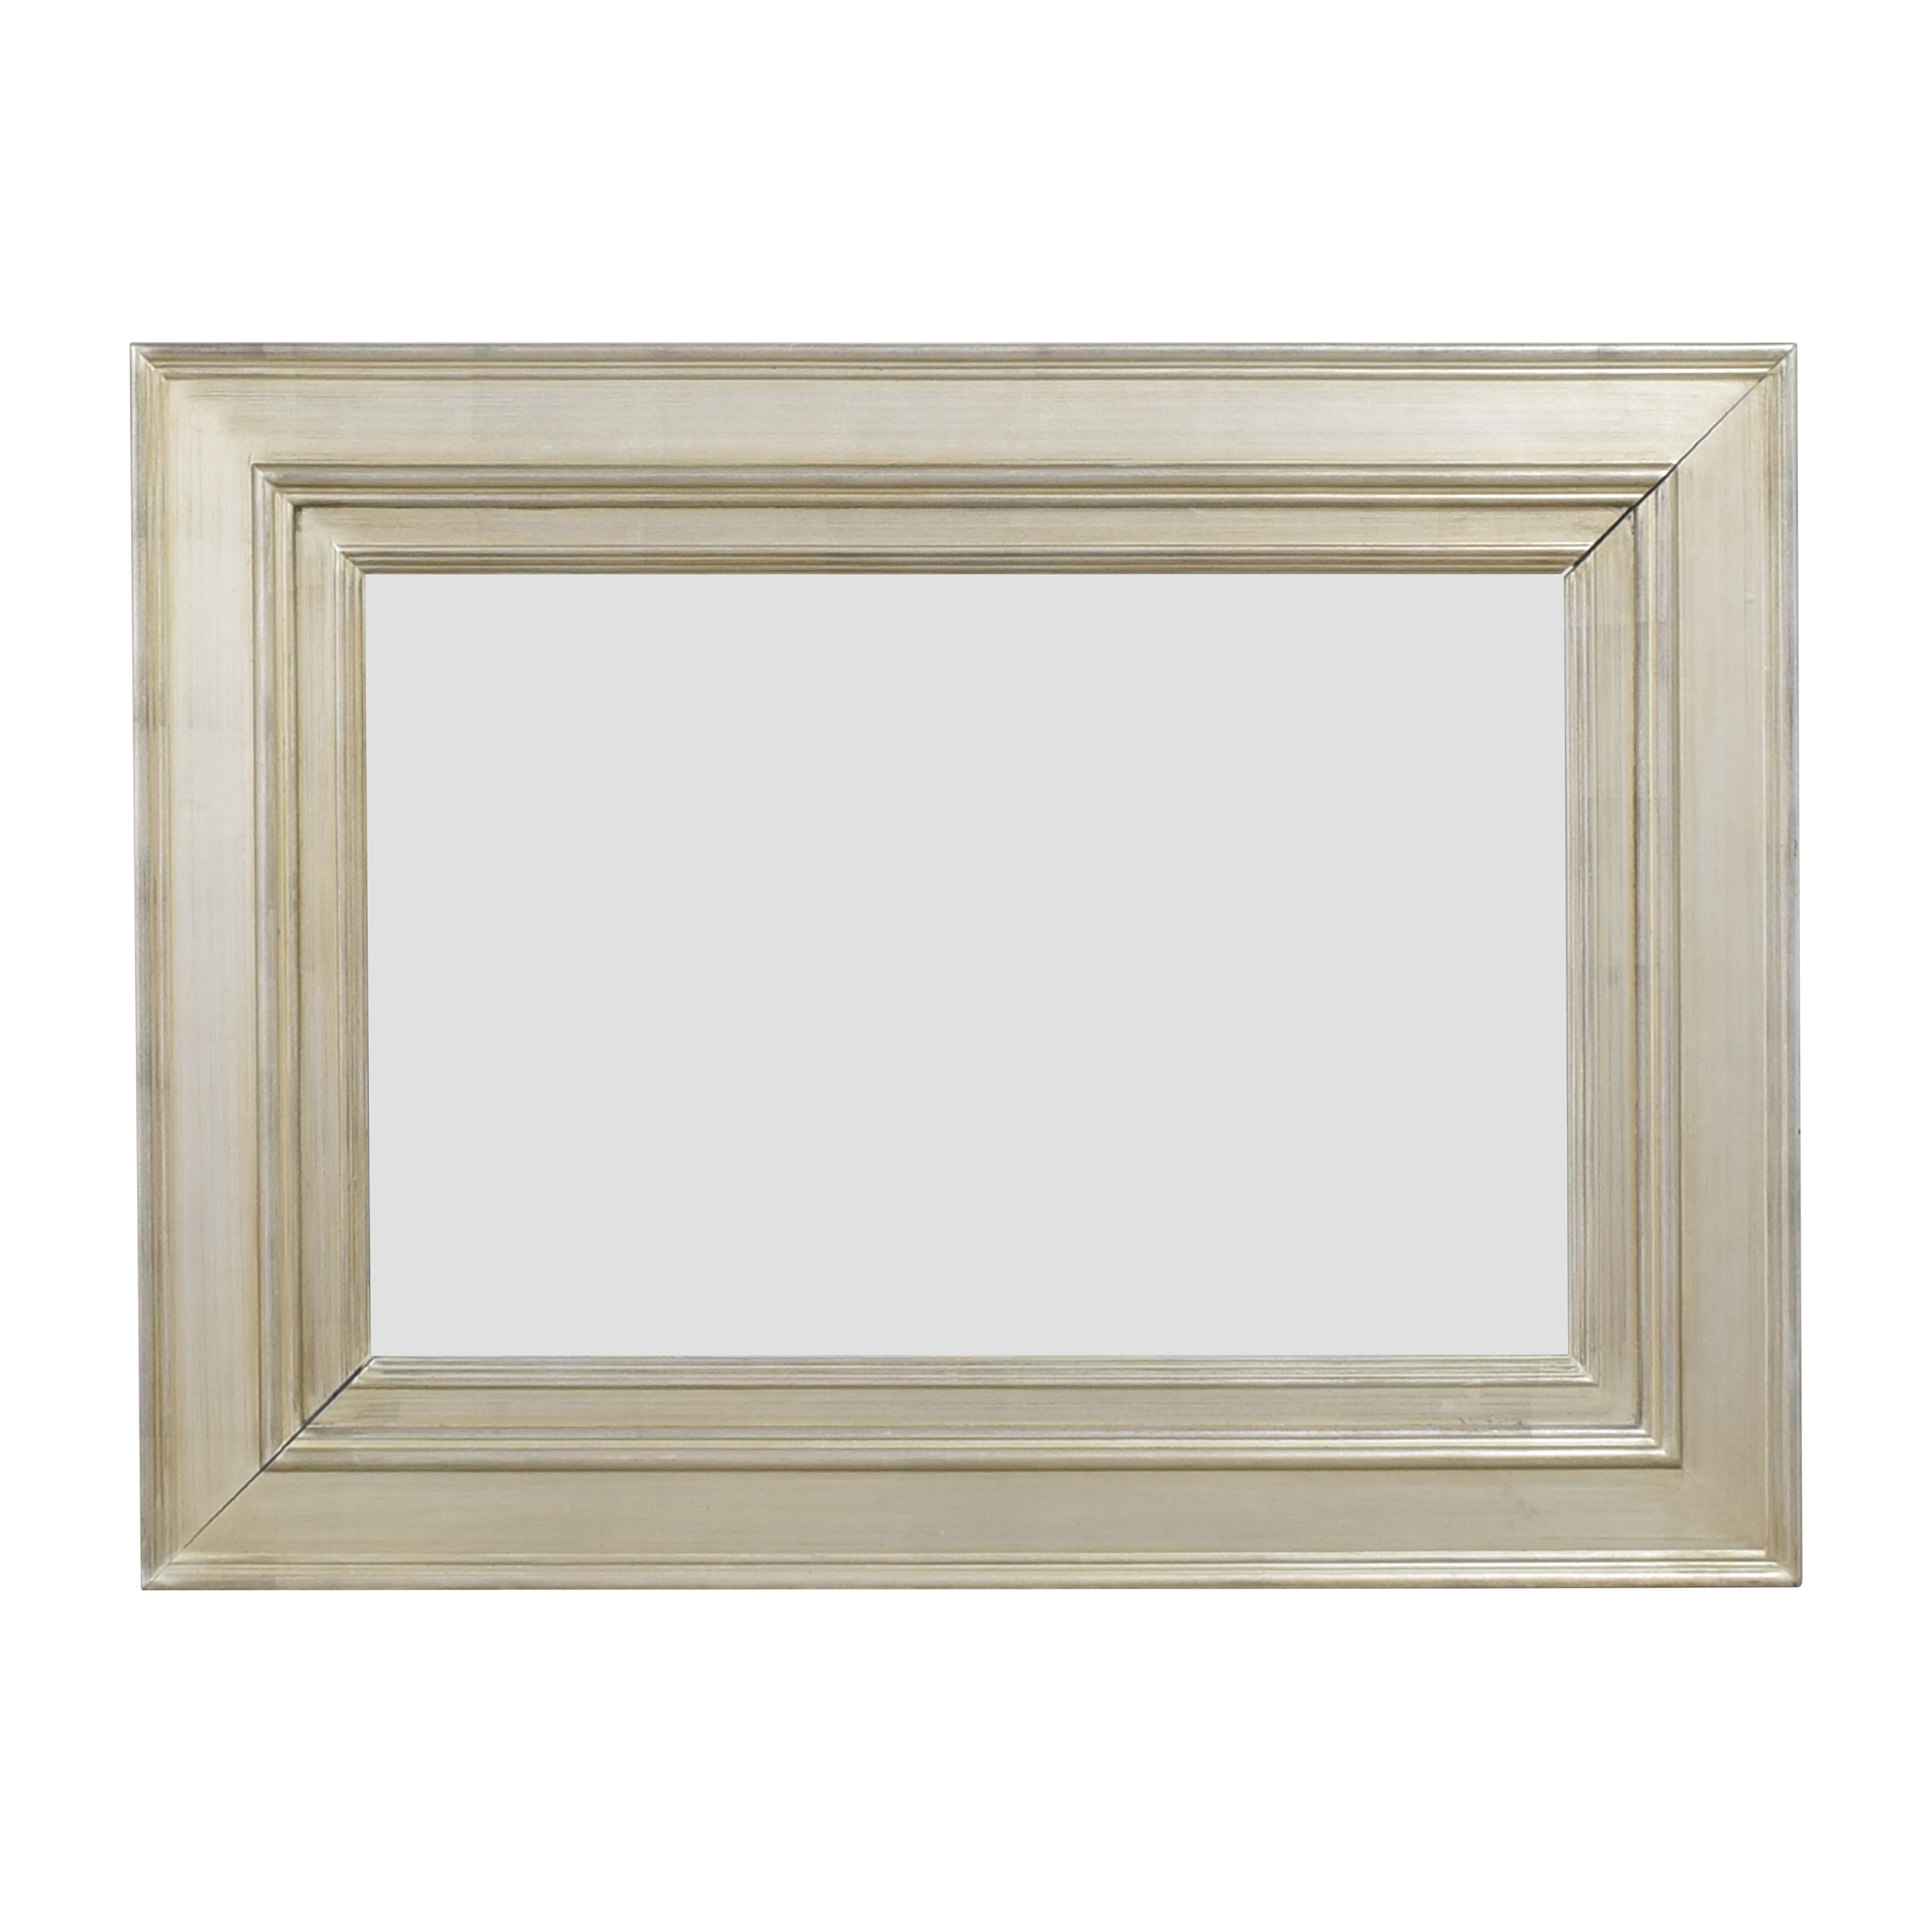 Framed Wall Mirror price